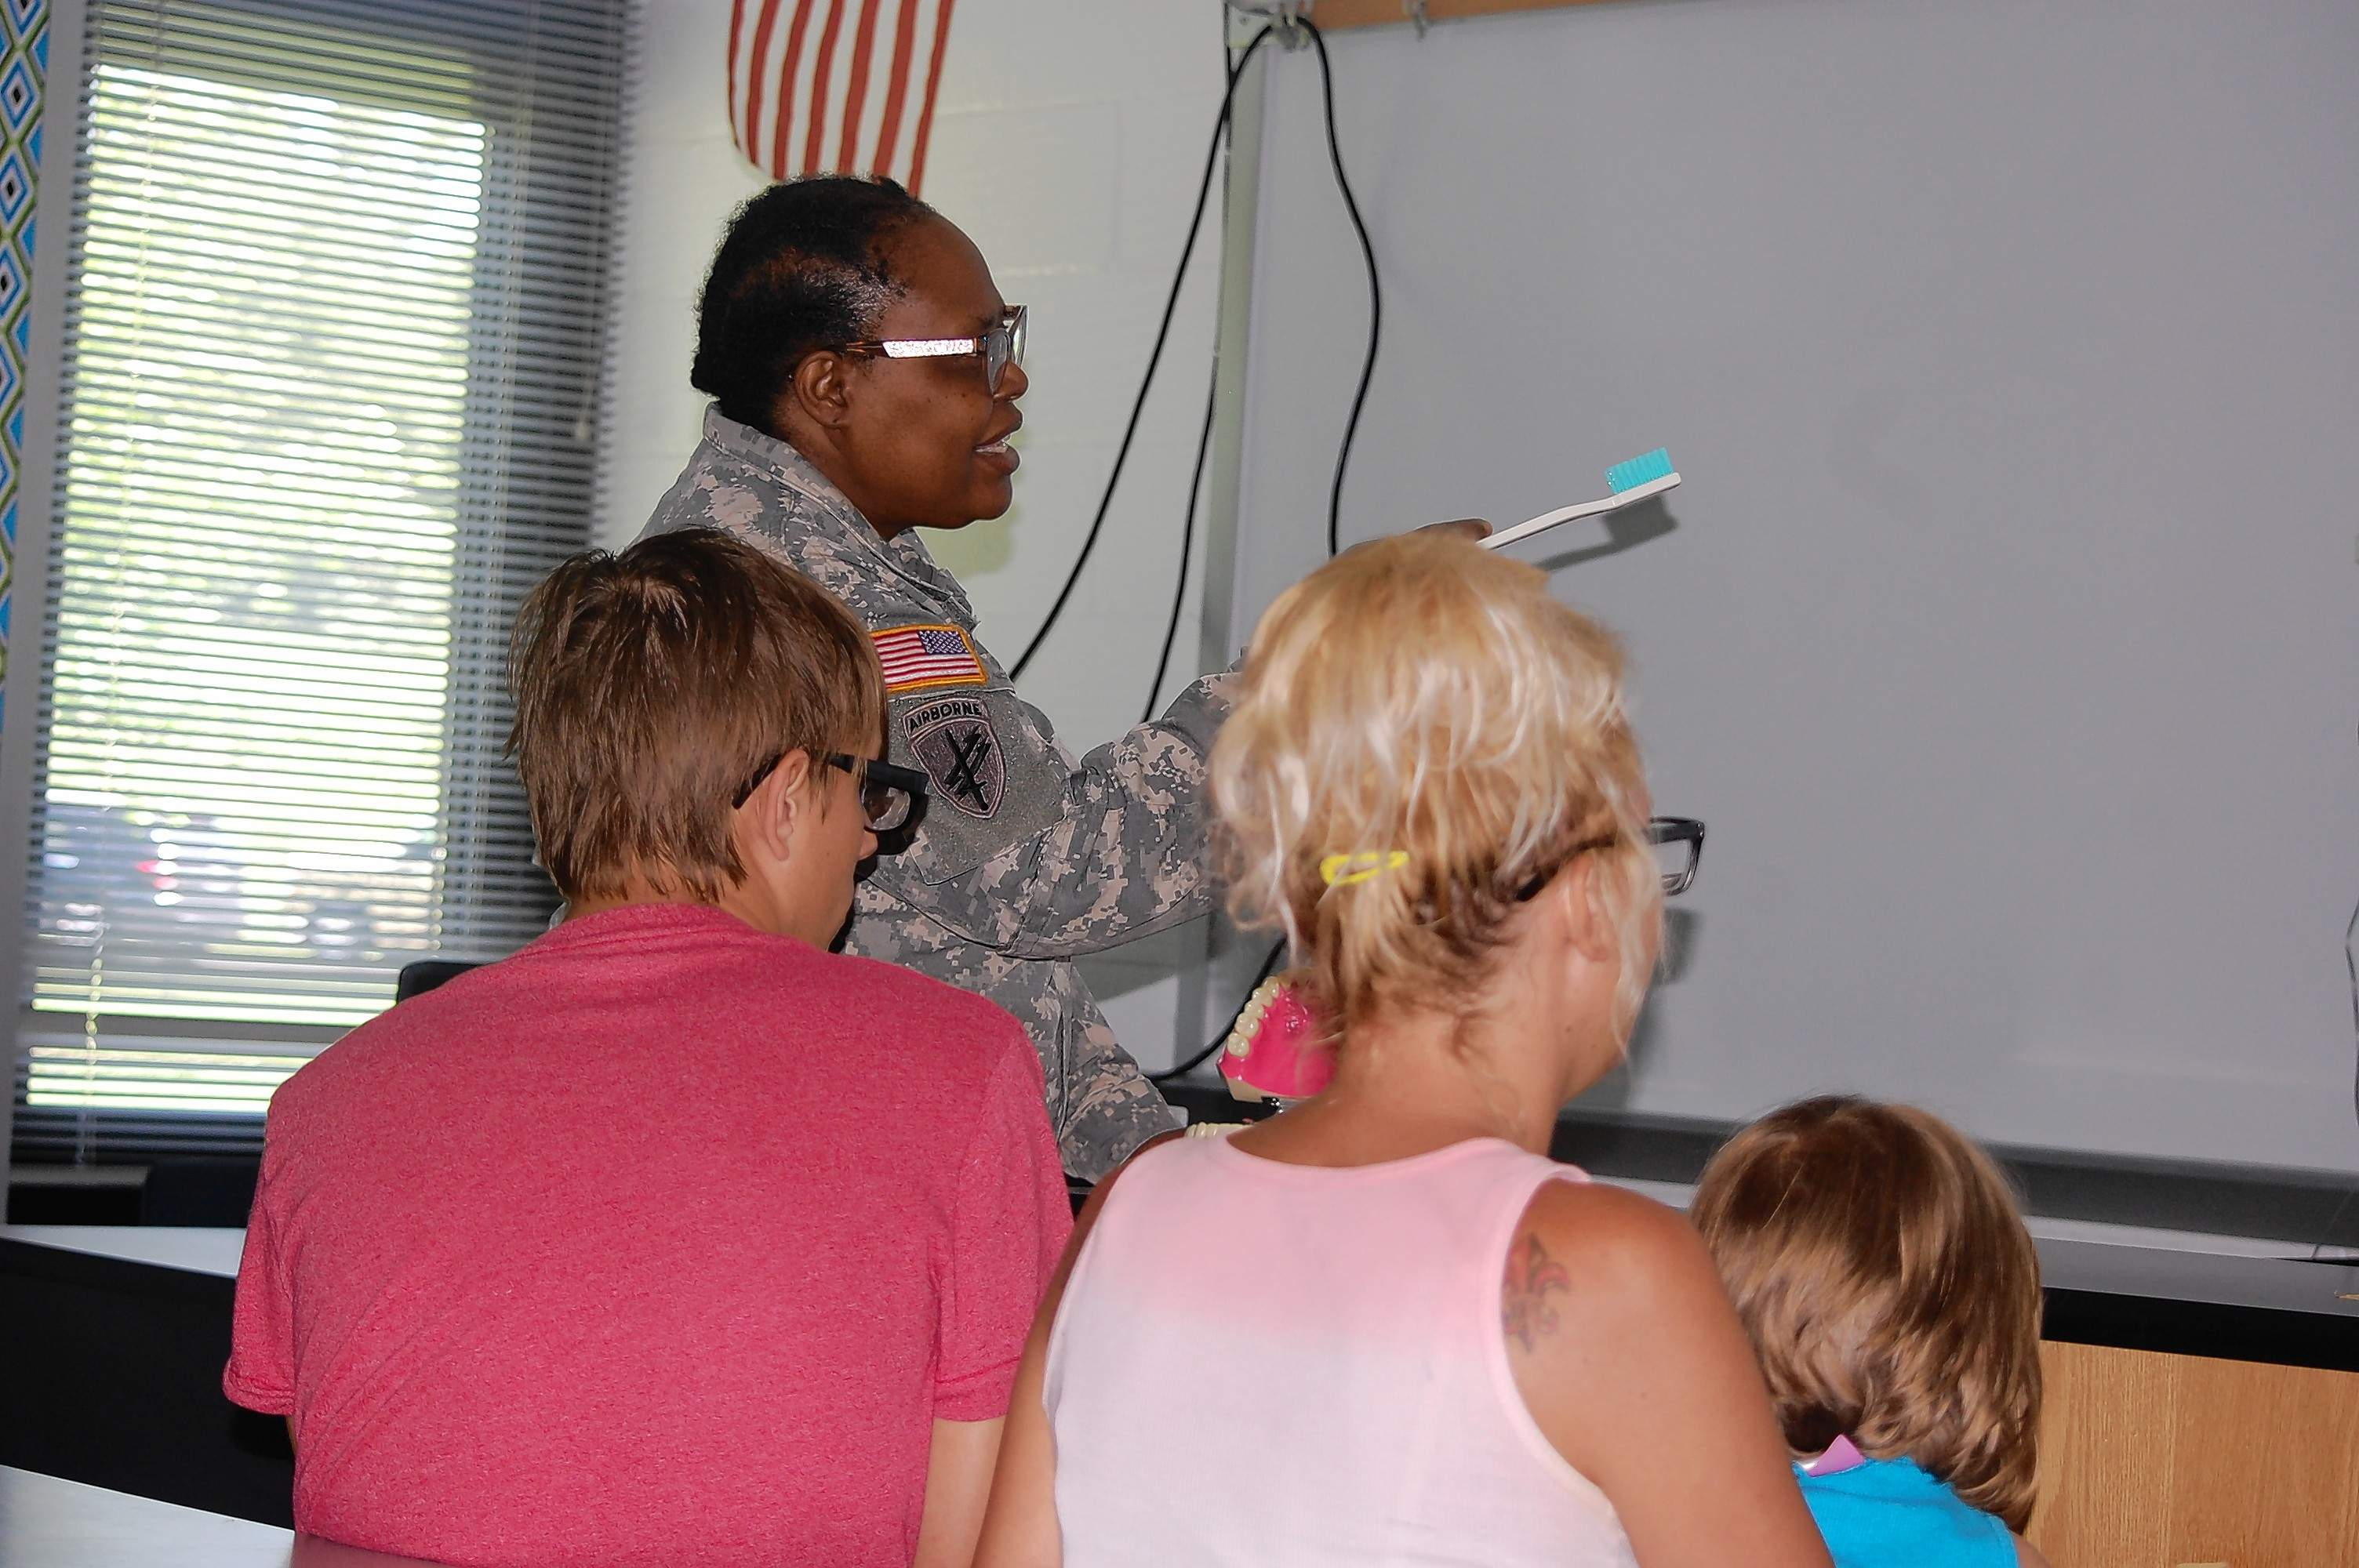 Staff Sgt. Estella Brown-James demonstrates oral hygiene with an oversized toothbrush. Amy Smith of Harrisburg, and her son, Josh Smith, listen.